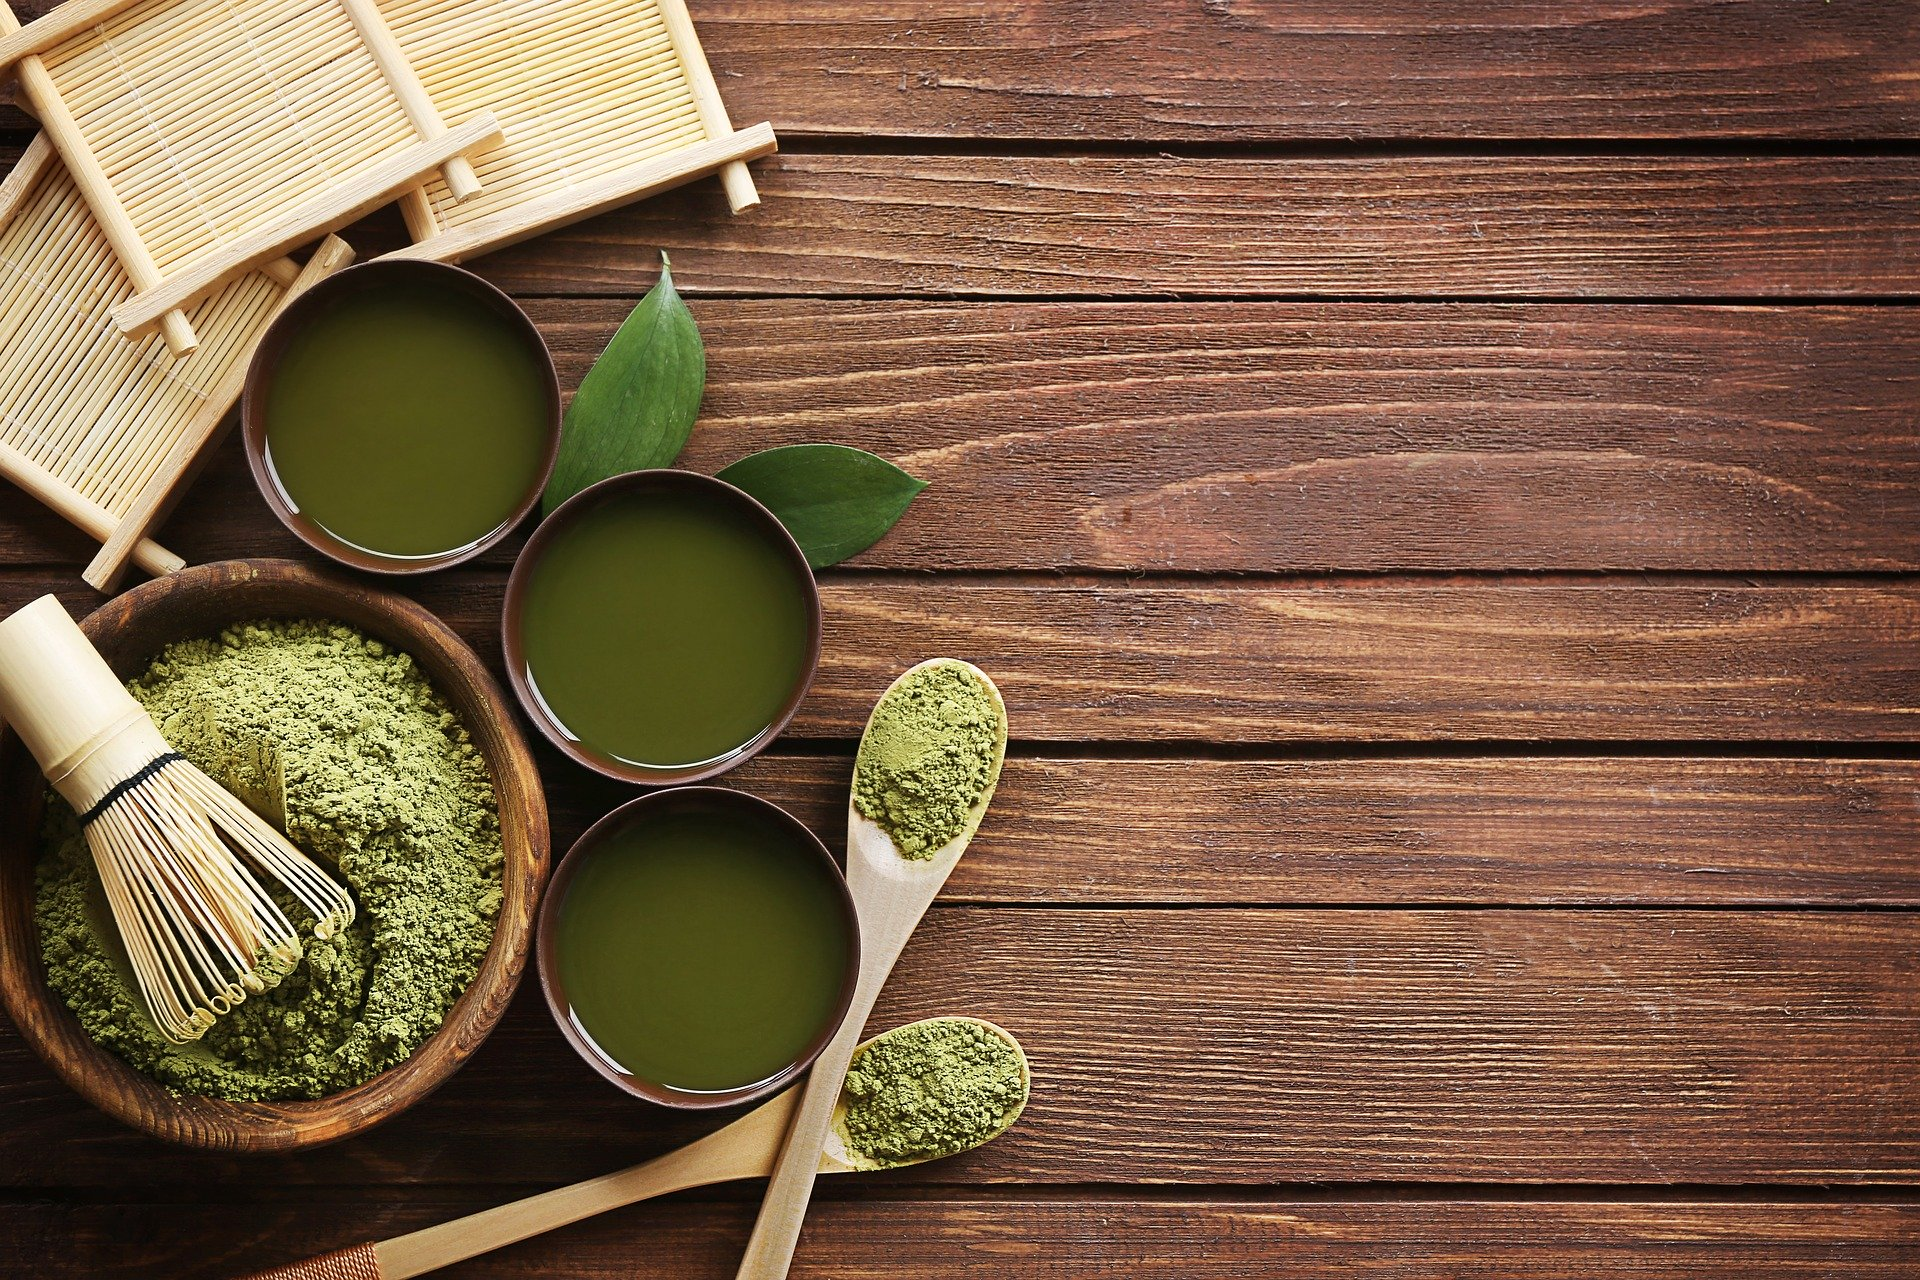 What is Green Matcha Powder